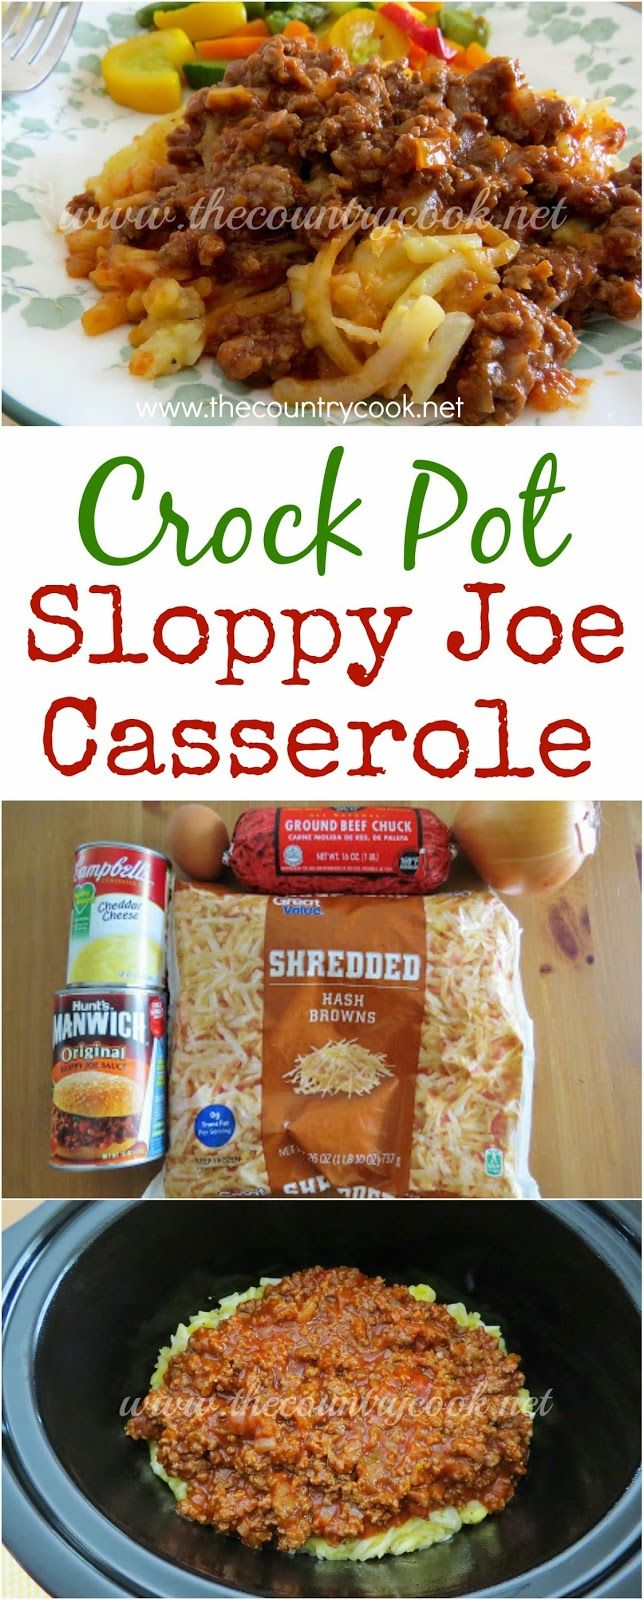 The Country Cook: Crock Pot Sloppy Joe Casserole